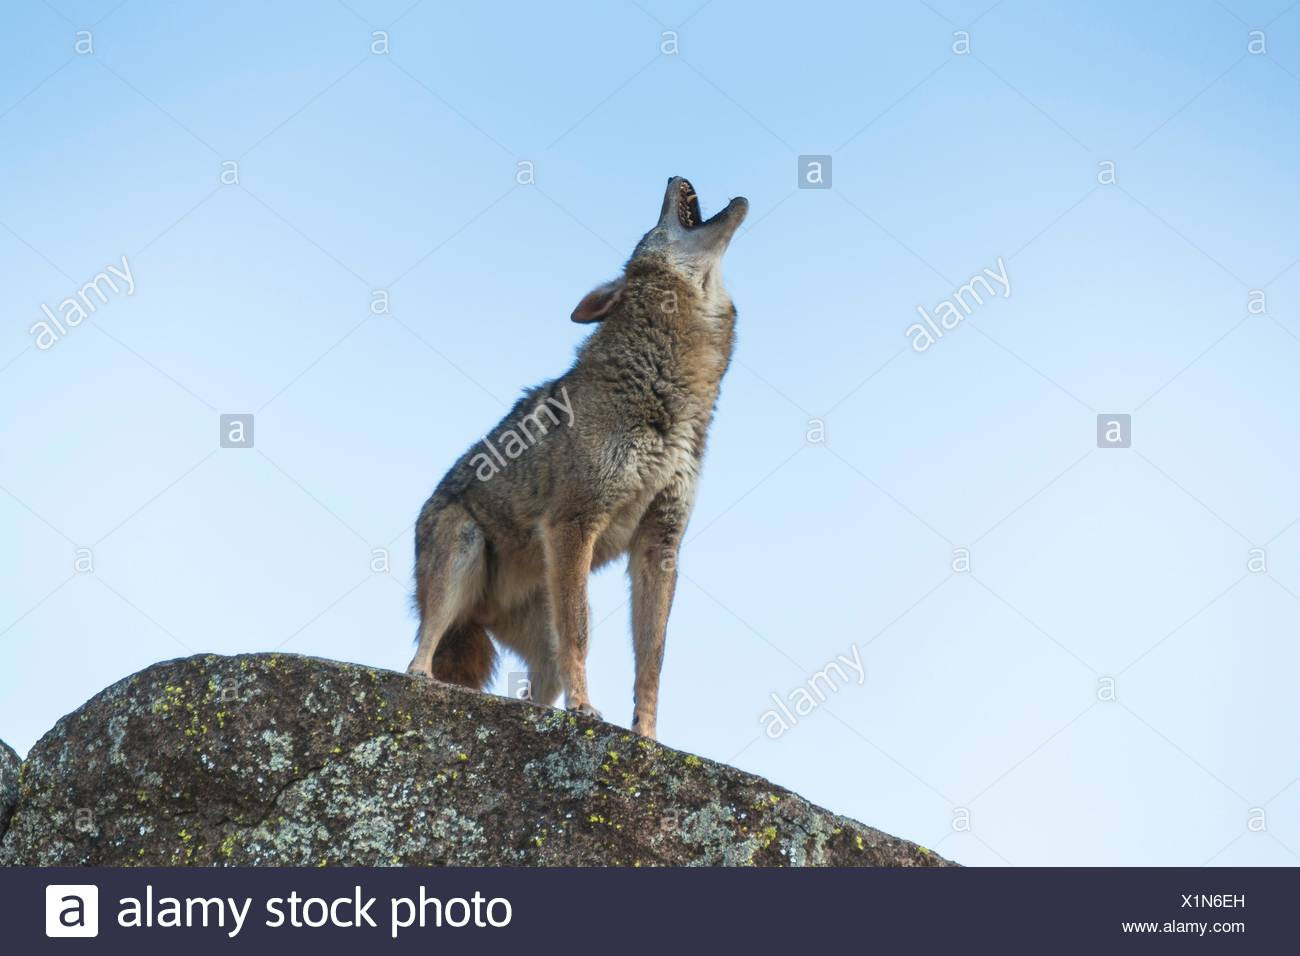 A coyote (Canis latrans) standing on a rock and howling, captive, California, USA - Stock Image